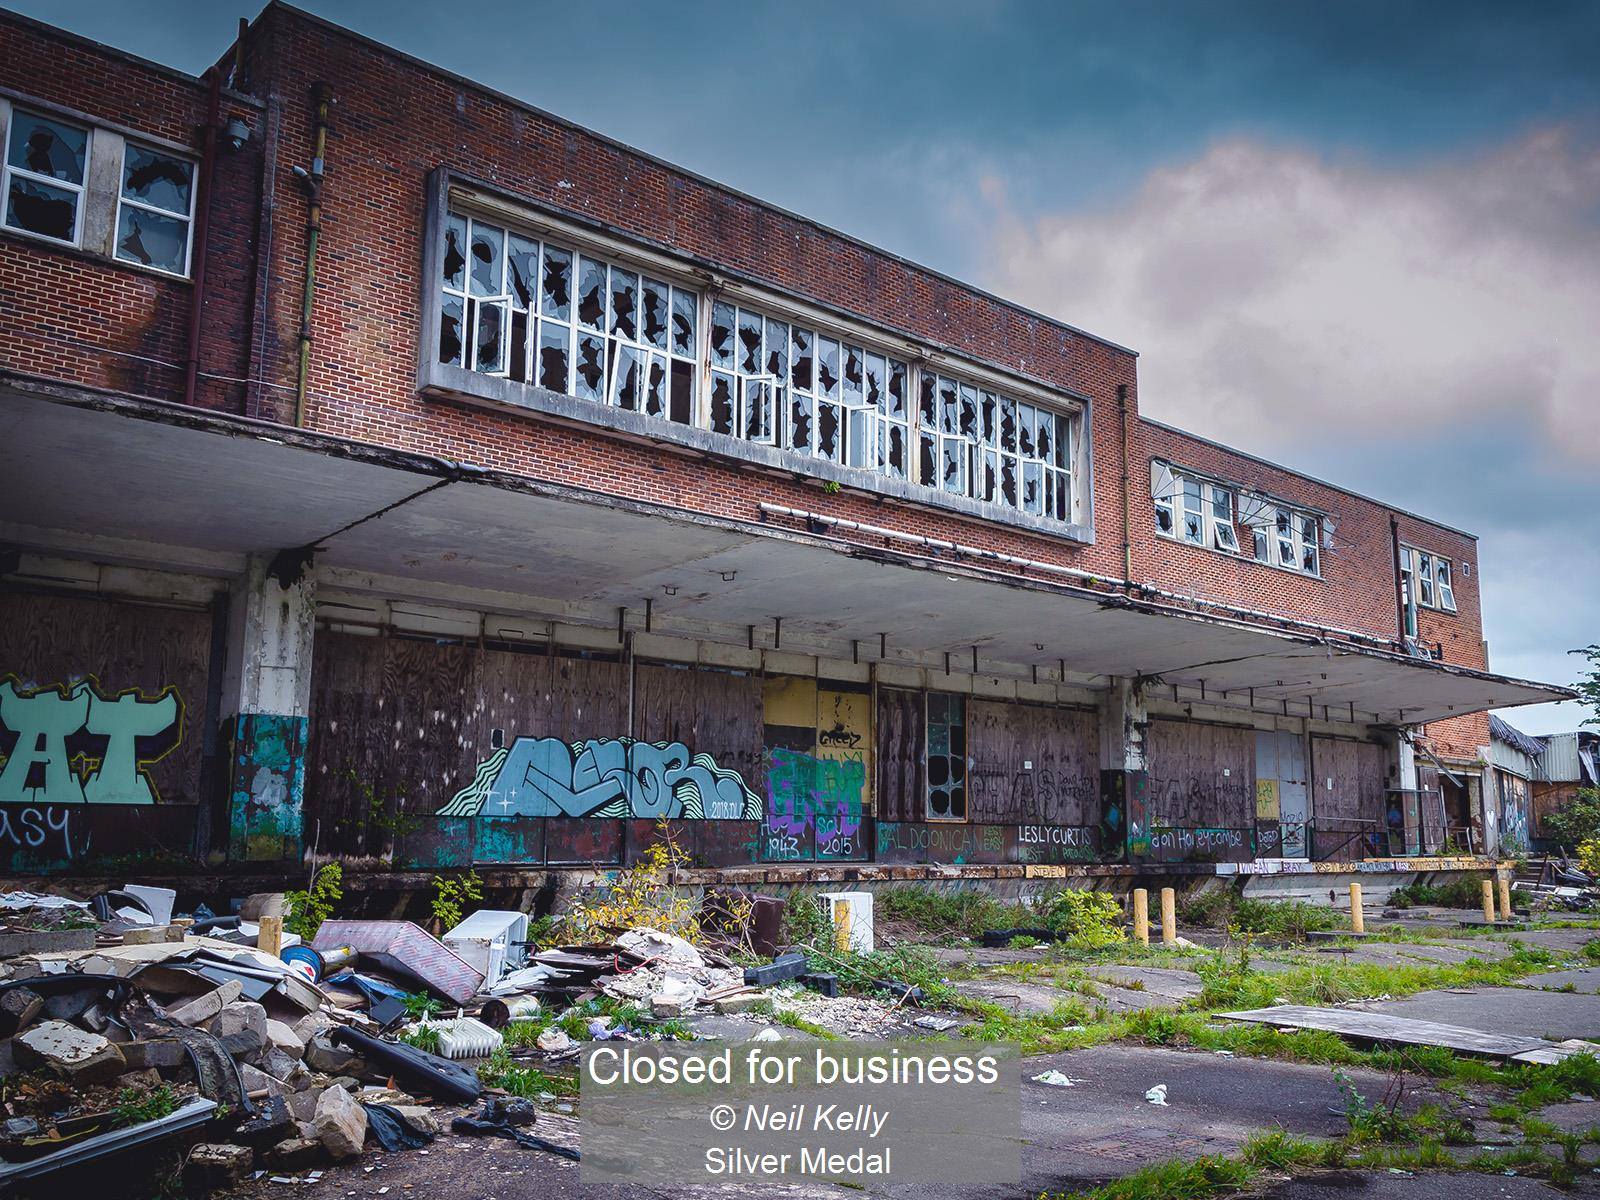 Closed for business_Neil Kelly_Silver